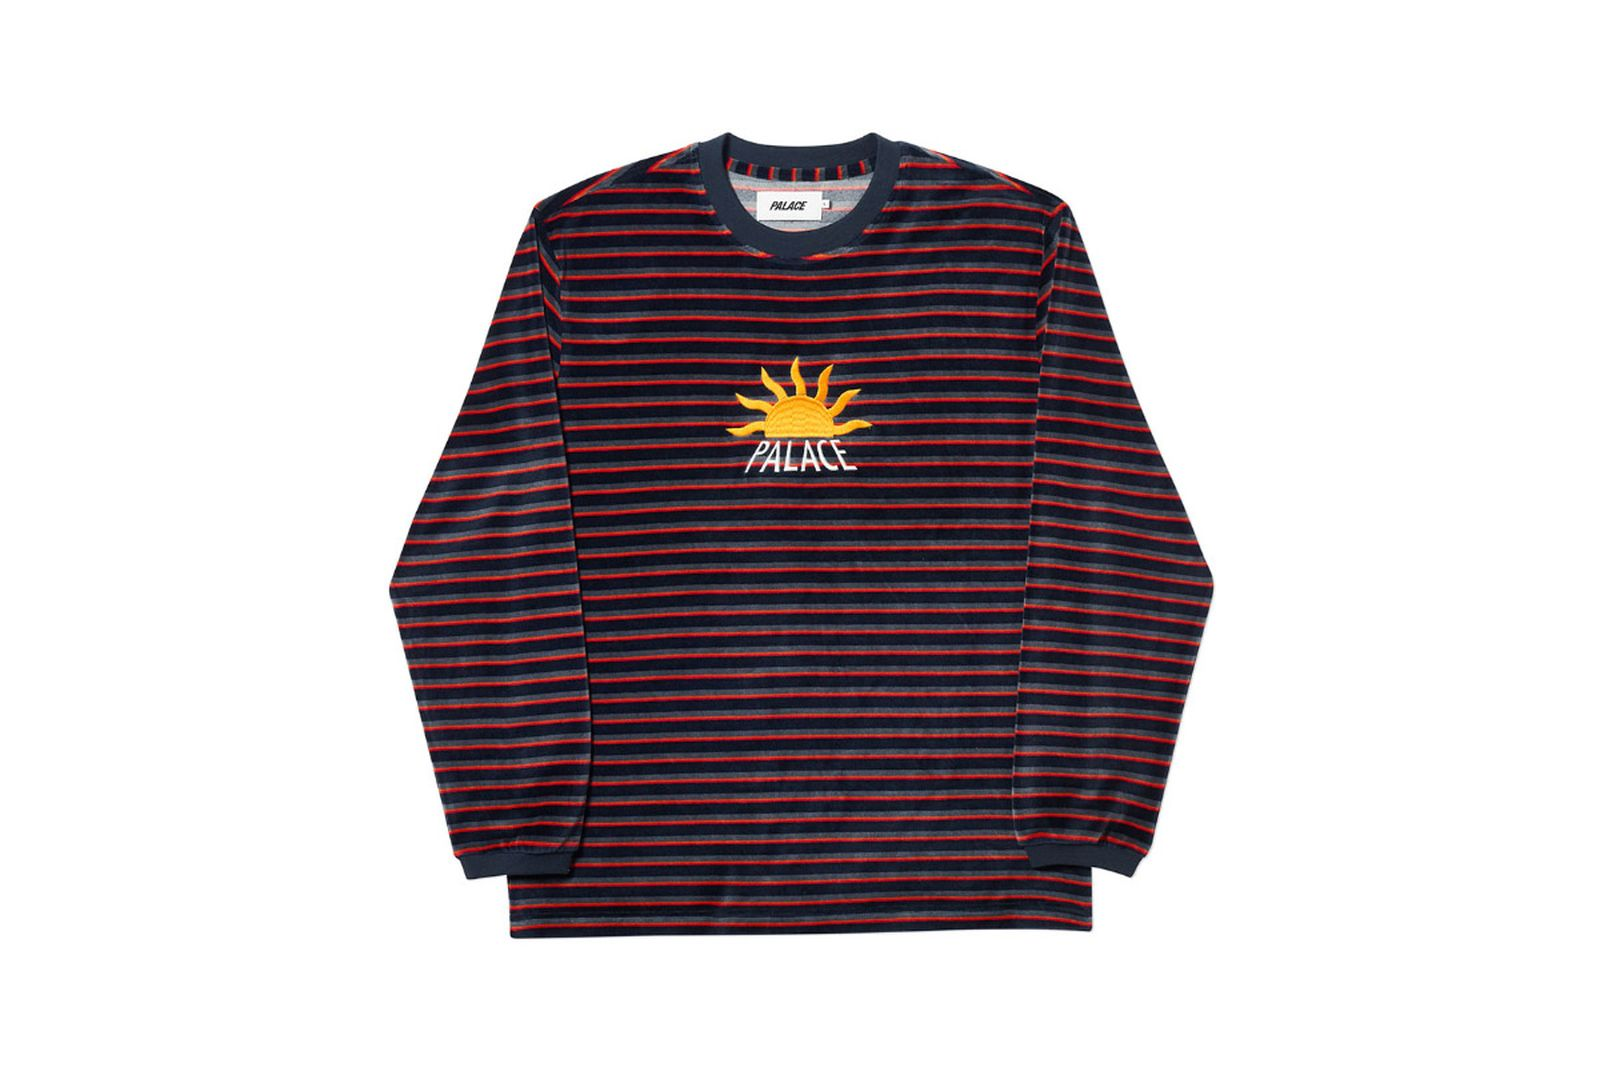 Palace 2019 Autumn Crew Optimo navy red grey front fw19